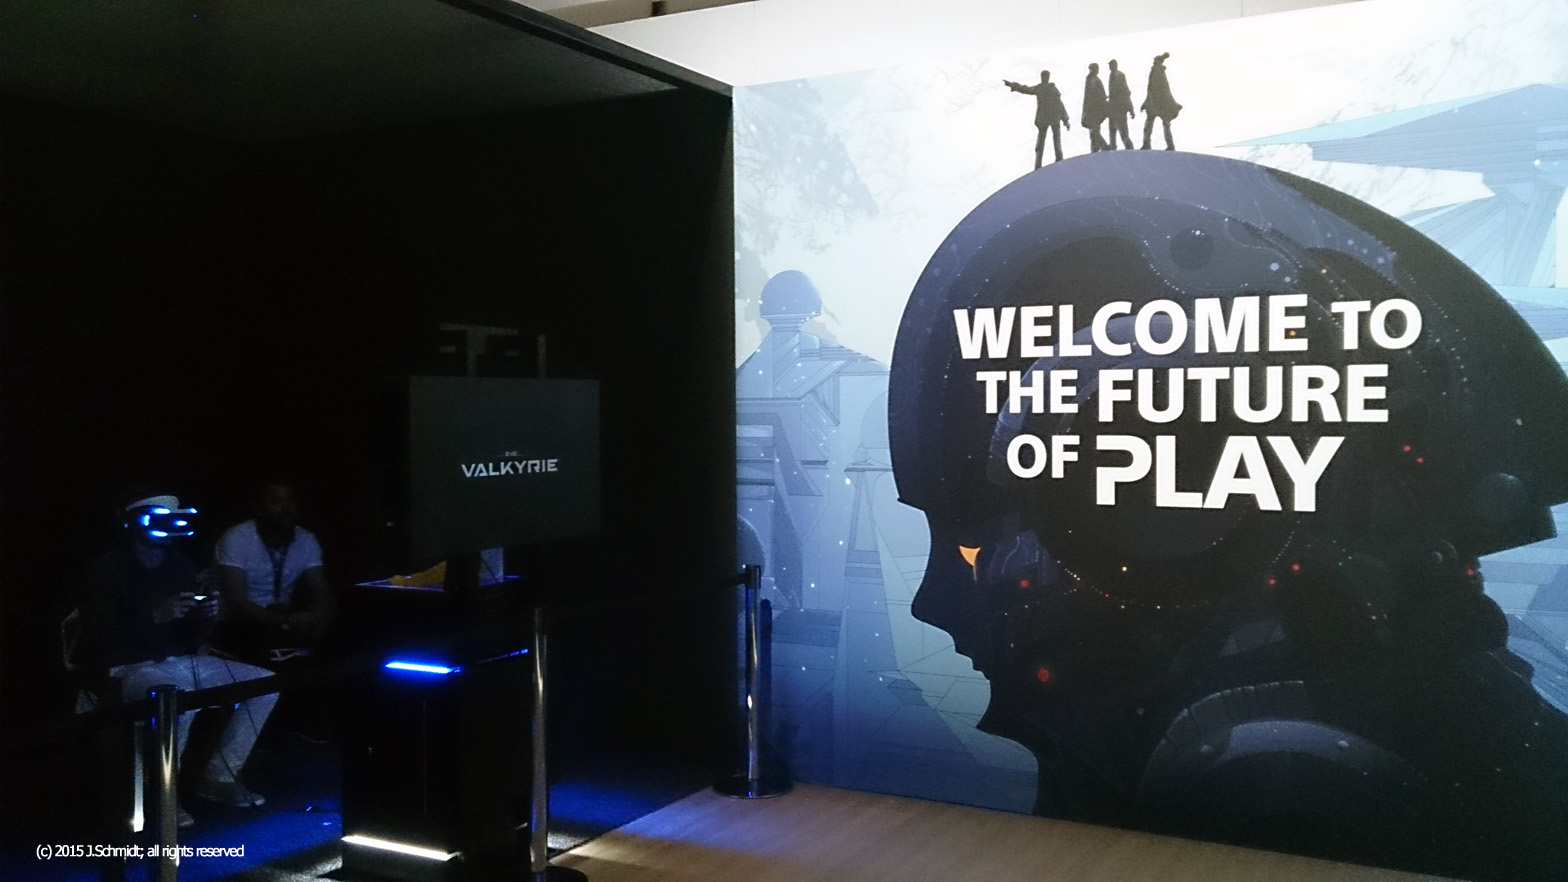 The future of play seems to be immersive for Sony's PS4